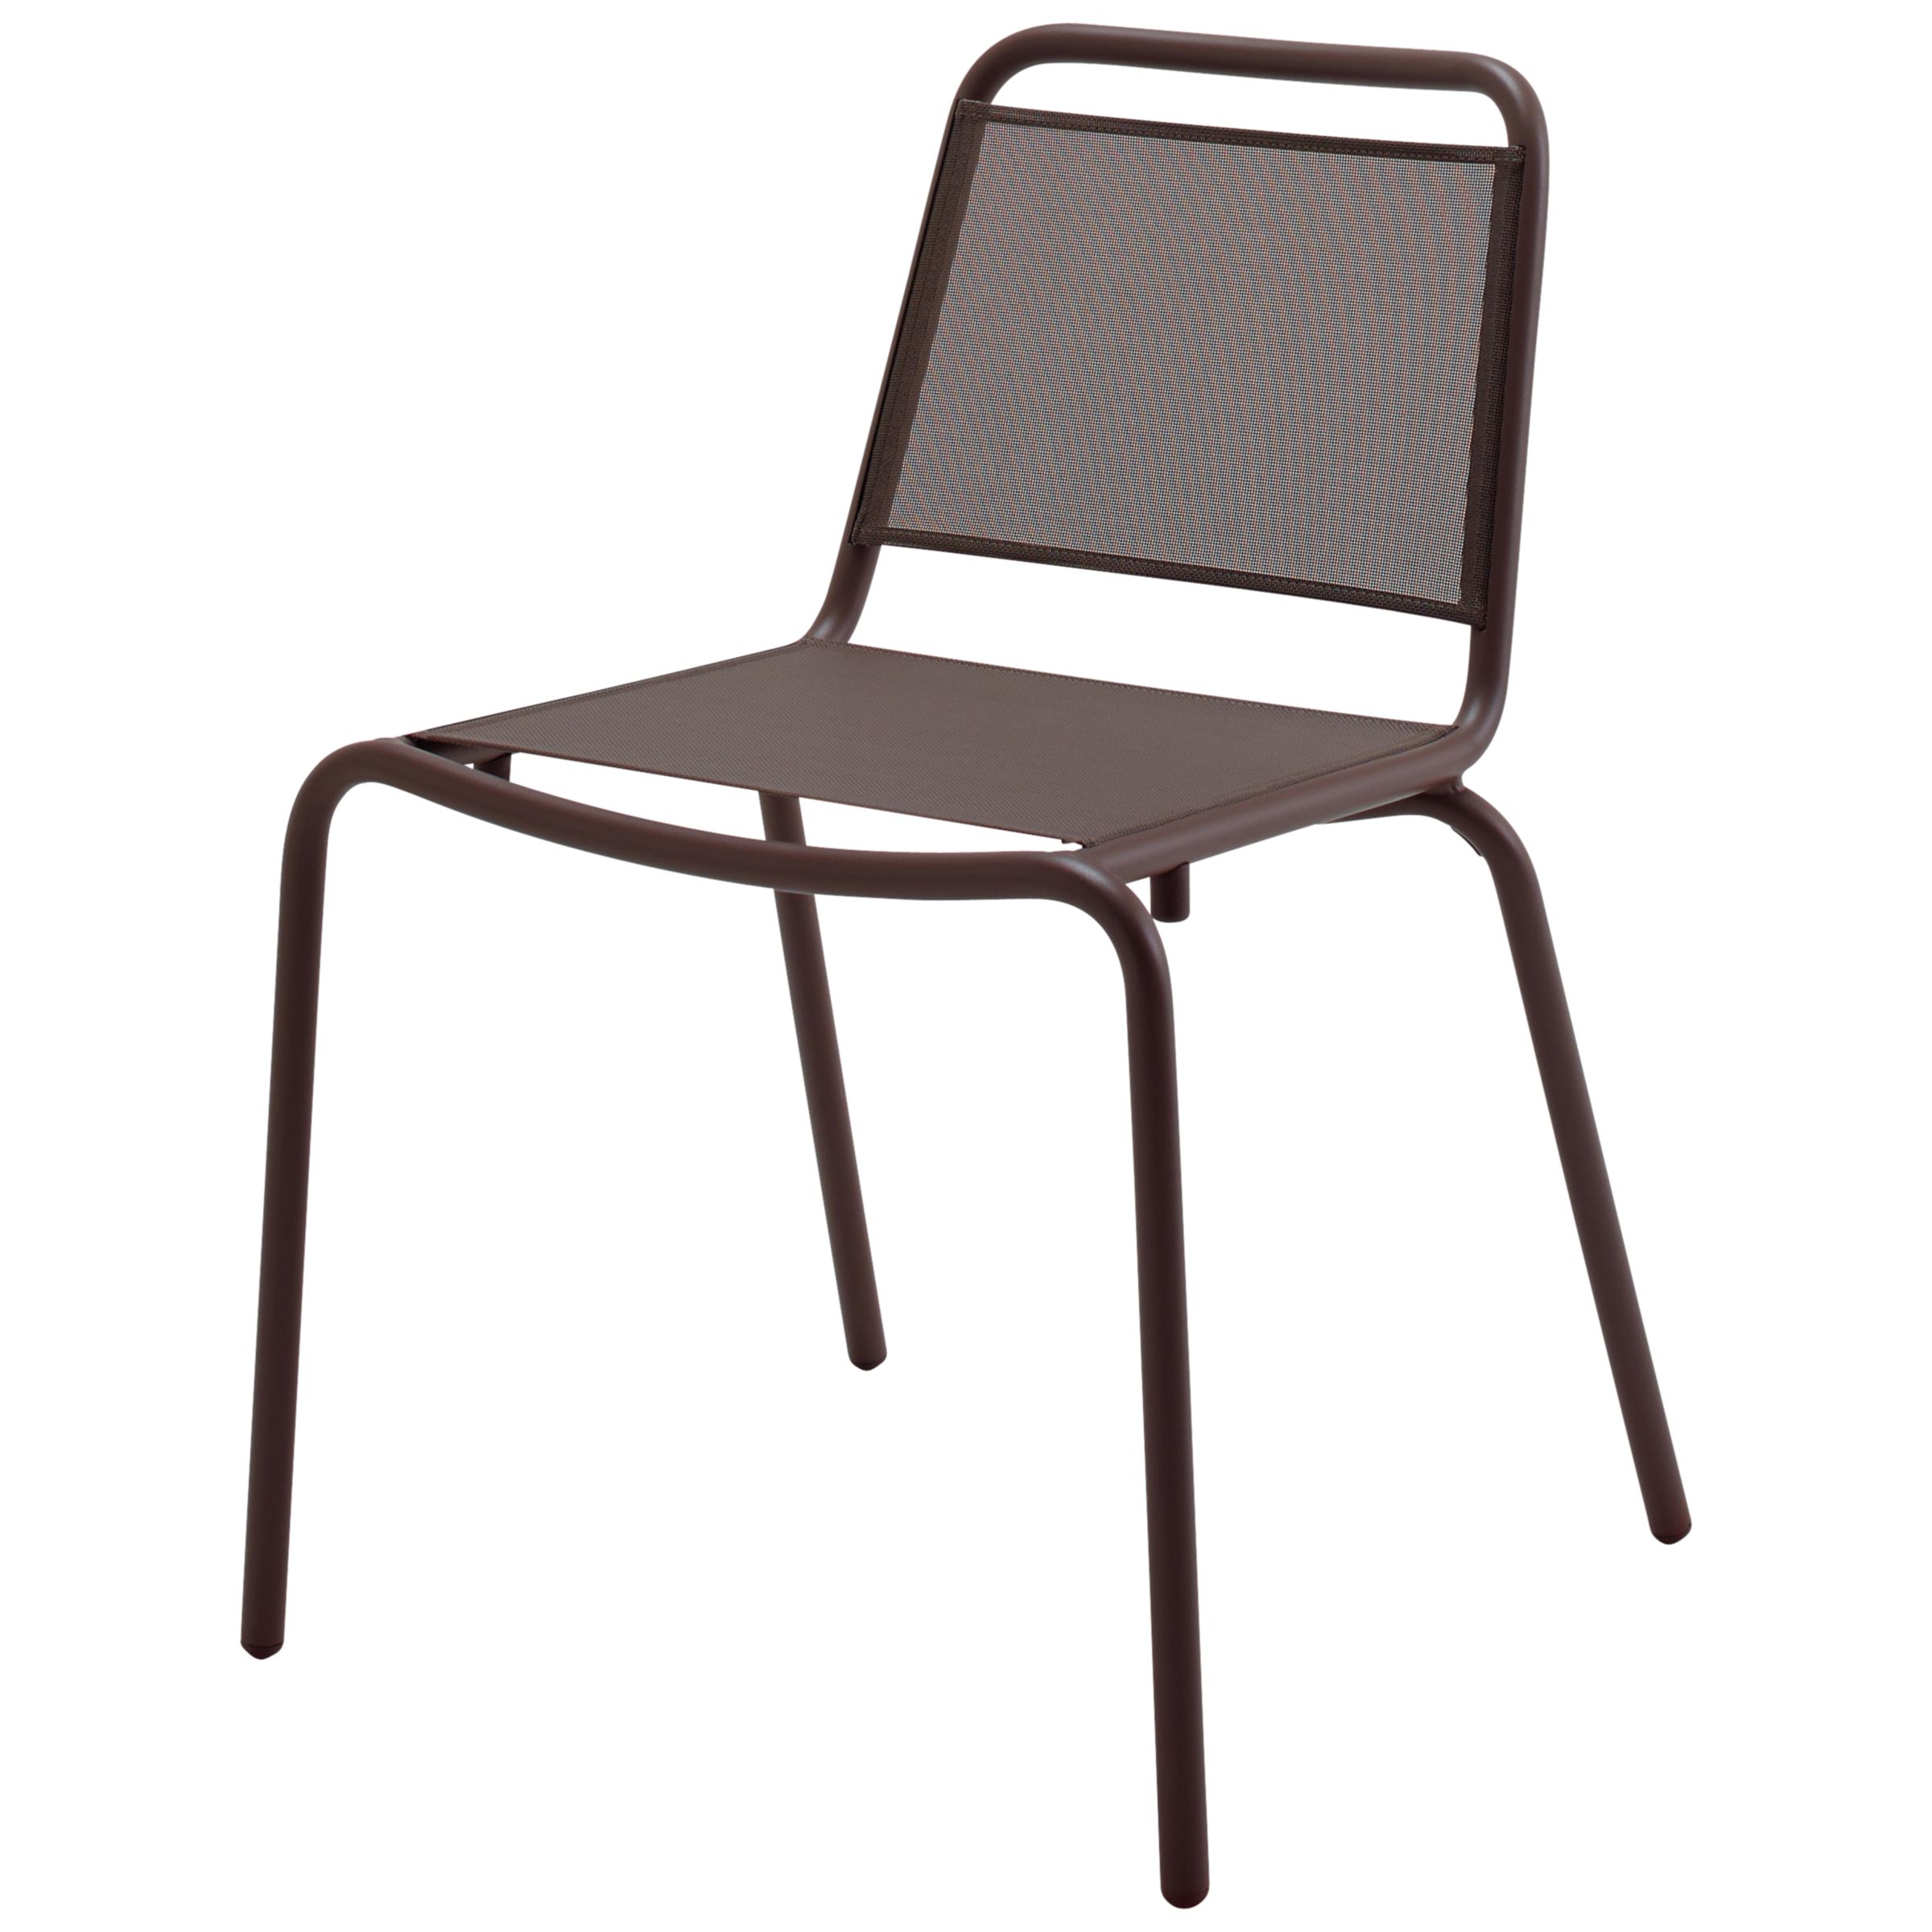 Gloster Nomad Sling Woven Stacking Chair, Taupe